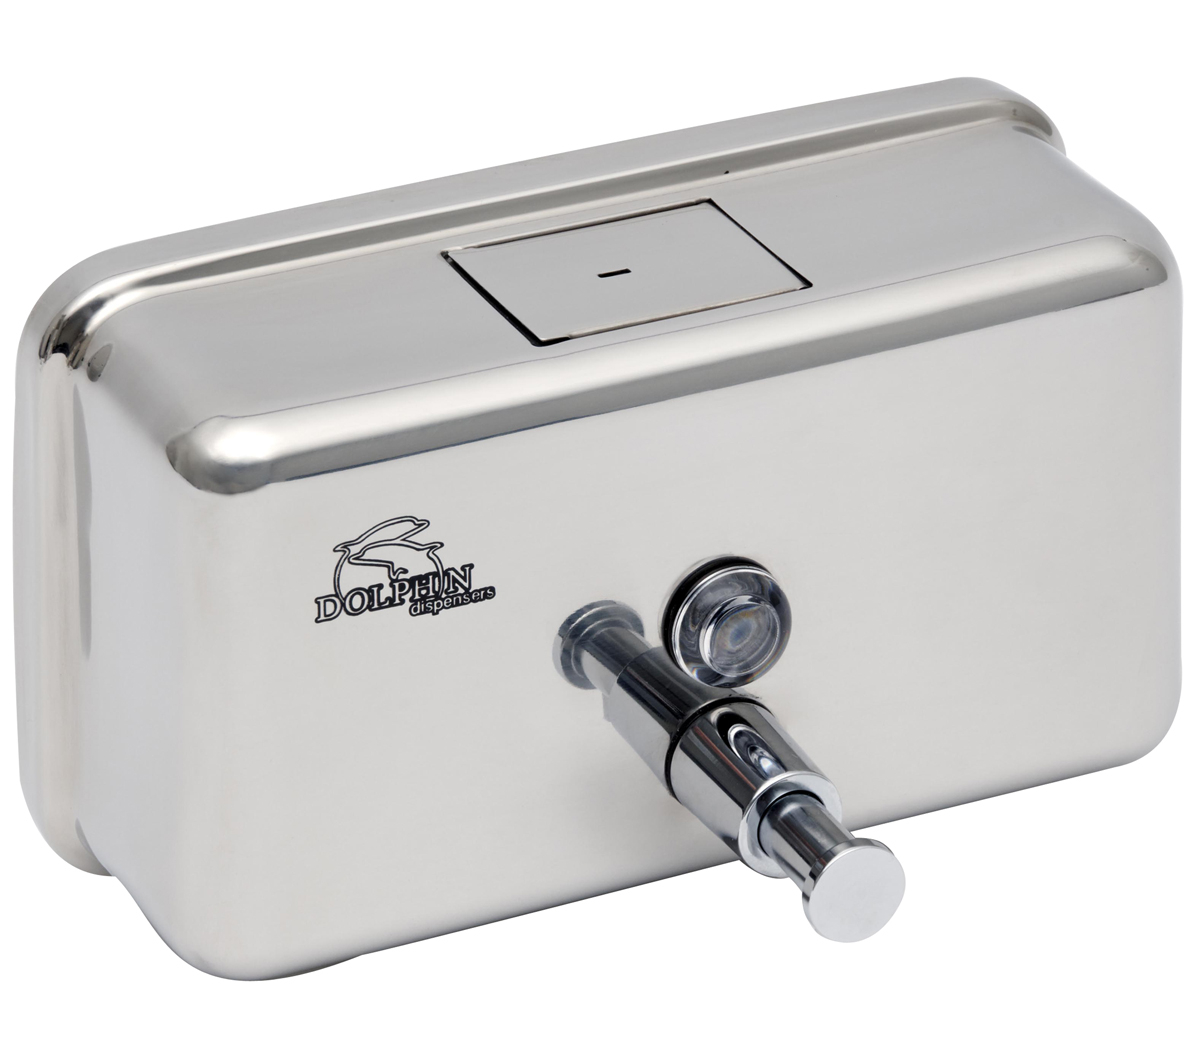 S/Steel Soap Dispenser (PL)